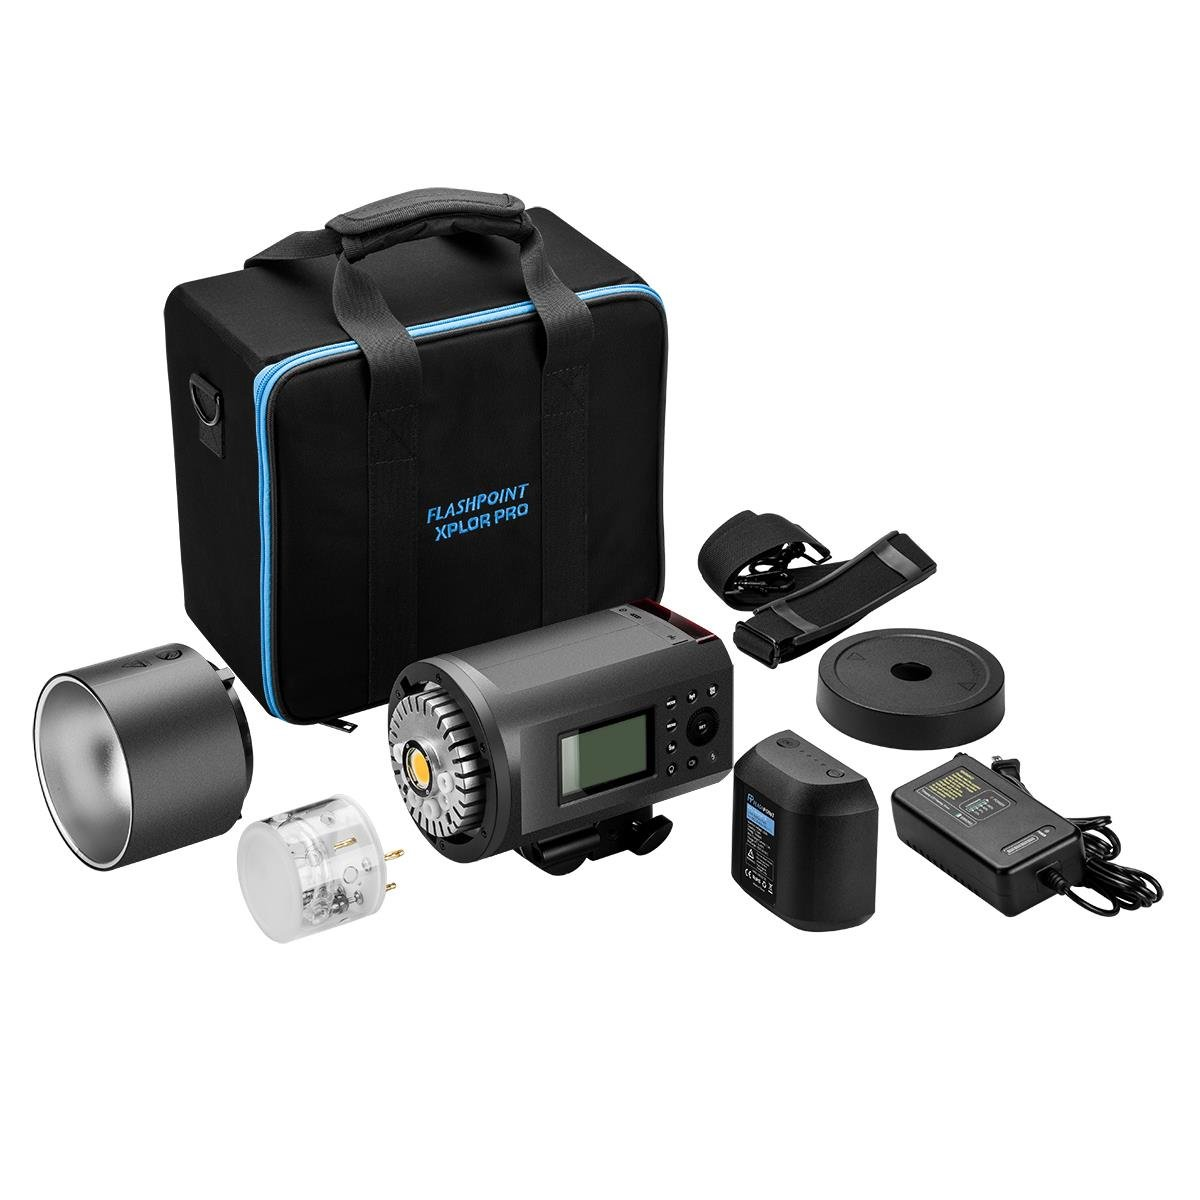 Flashpoint XPLOR 600PRO TTL Battery-Powered Monolight with Built-in R2 2.4GHz Radio Remote System R2 Pro Transmitter for Nikon (Bowens Mount) - Godox AD600 Pro by Flashpoint (Image #8)